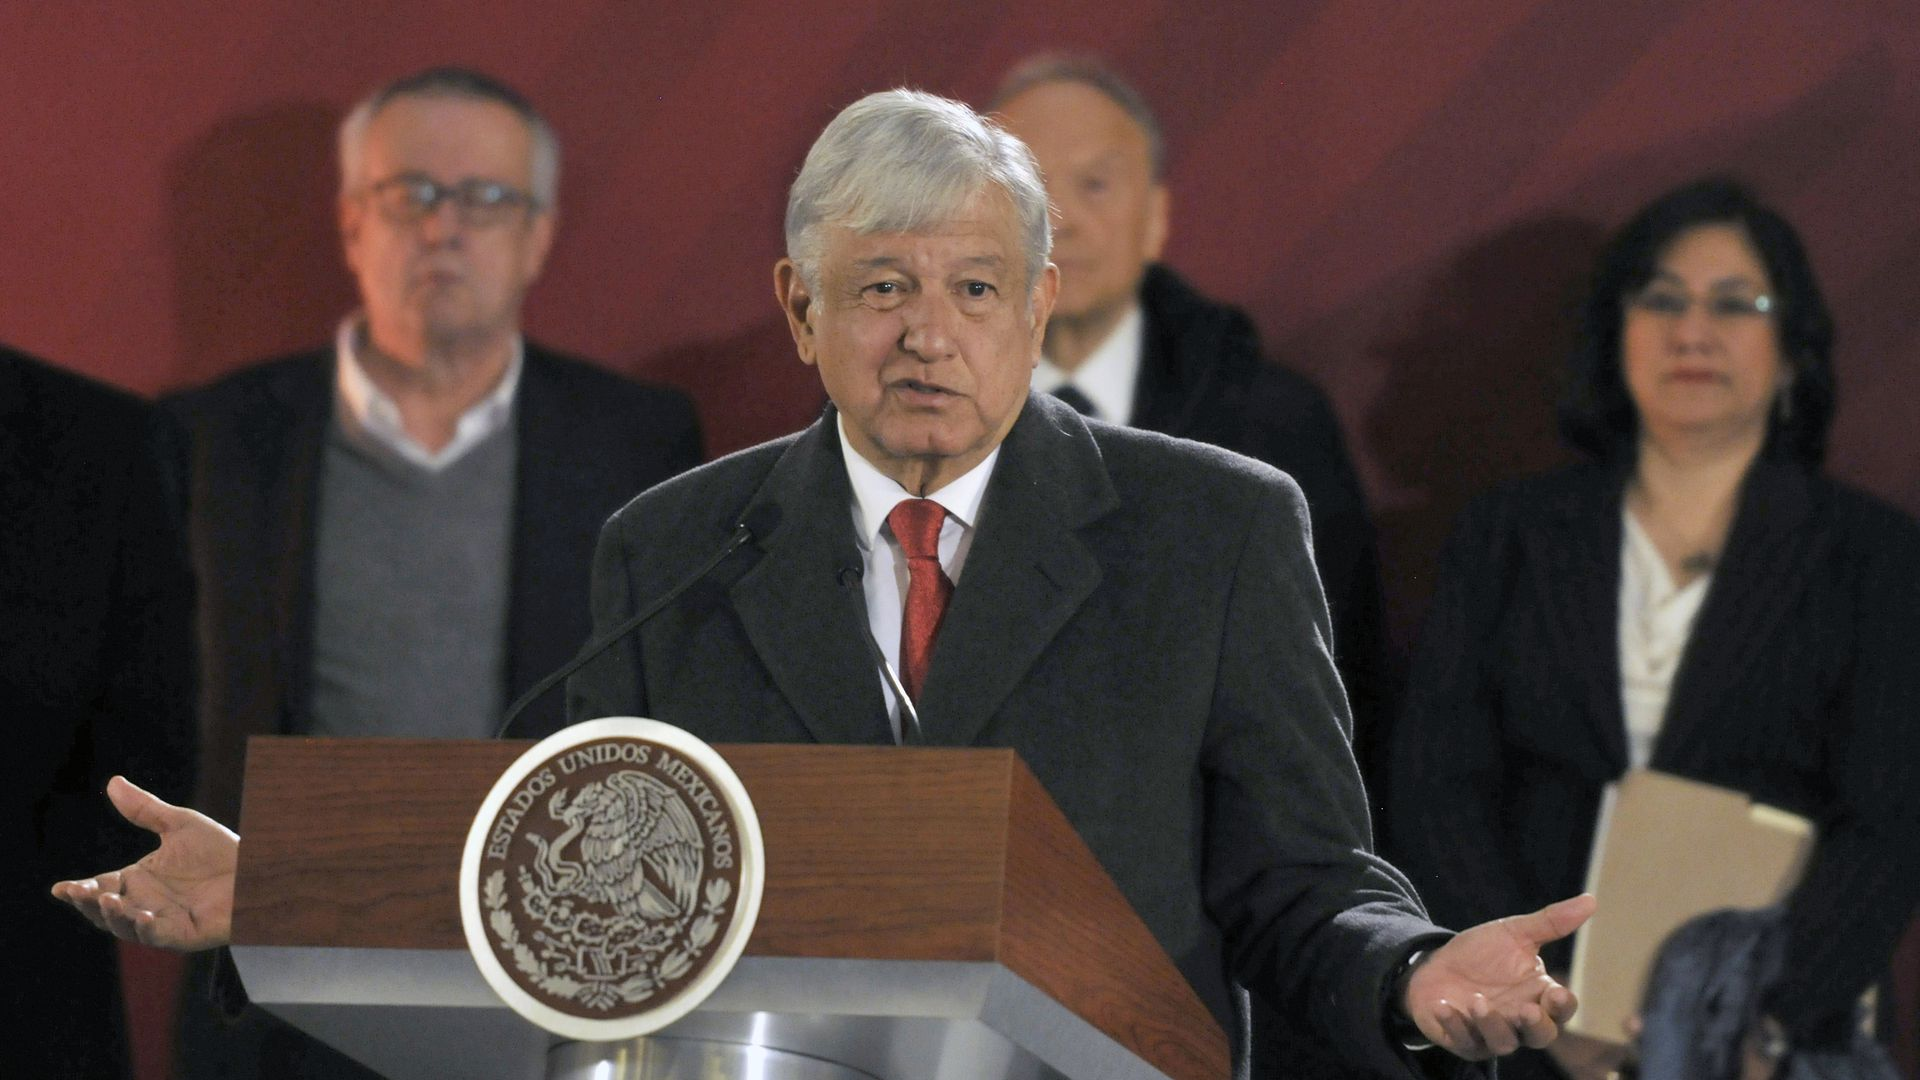 President of Mexico Andrés Manuel López Obrador speaks during the morning press conference at National Palace in Mexico City.